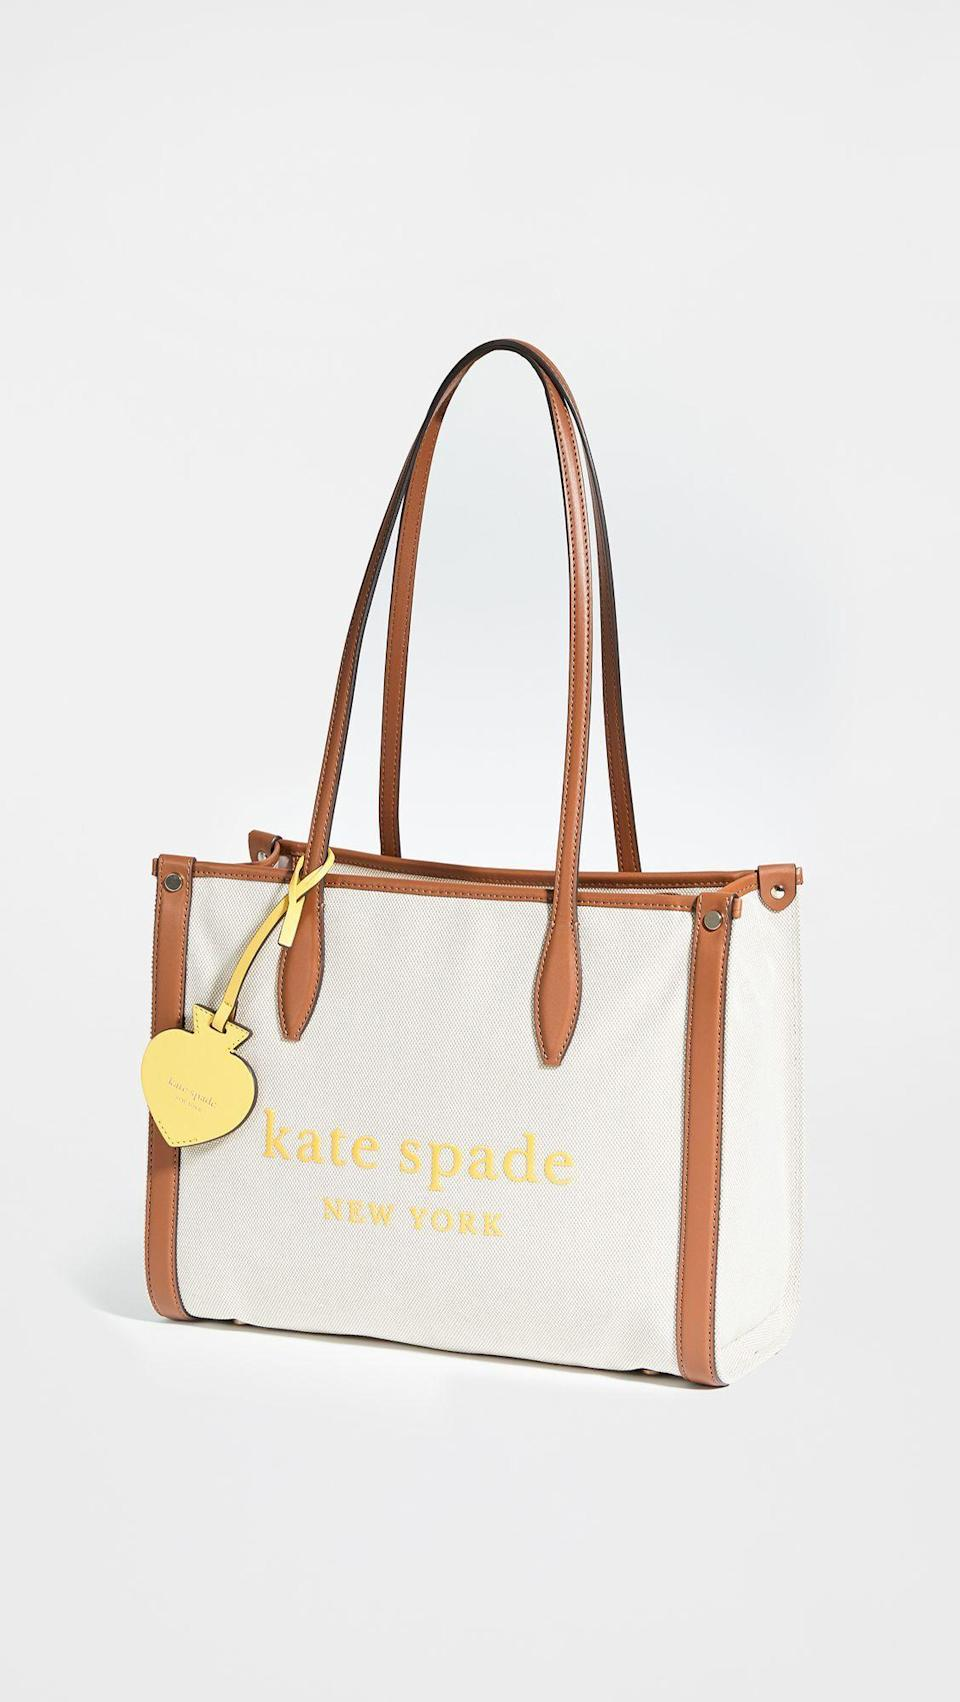 """<p><strong>Kate Spade New York</strong></p><p>shopbop.com</p><p><strong>$158.00</strong></p><p><a href=""""https://go.redirectingat.com?id=74968X1596630&url=https%3A%2F%2Fwww.shopbop.com%2Fmedium-market-tote-kate-spade%2Fvp%2Fv%3D1%2F1531087106.htm&sref=https%3A%2F%2Fwww.cosmopolitan.com%2Fstyle-beauty%2Ffashion%2Fg32868849%2Fbest-teacher-gifts%2F"""" rel=""""nofollow noopener"""" target=""""_blank"""" data-ylk=""""slk:Shop Now"""" class=""""link rapid-noclick-resp"""">Shop Now</a></p><p>Here's a stylish way for them to carry around all of those papers that need grading.</p>"""